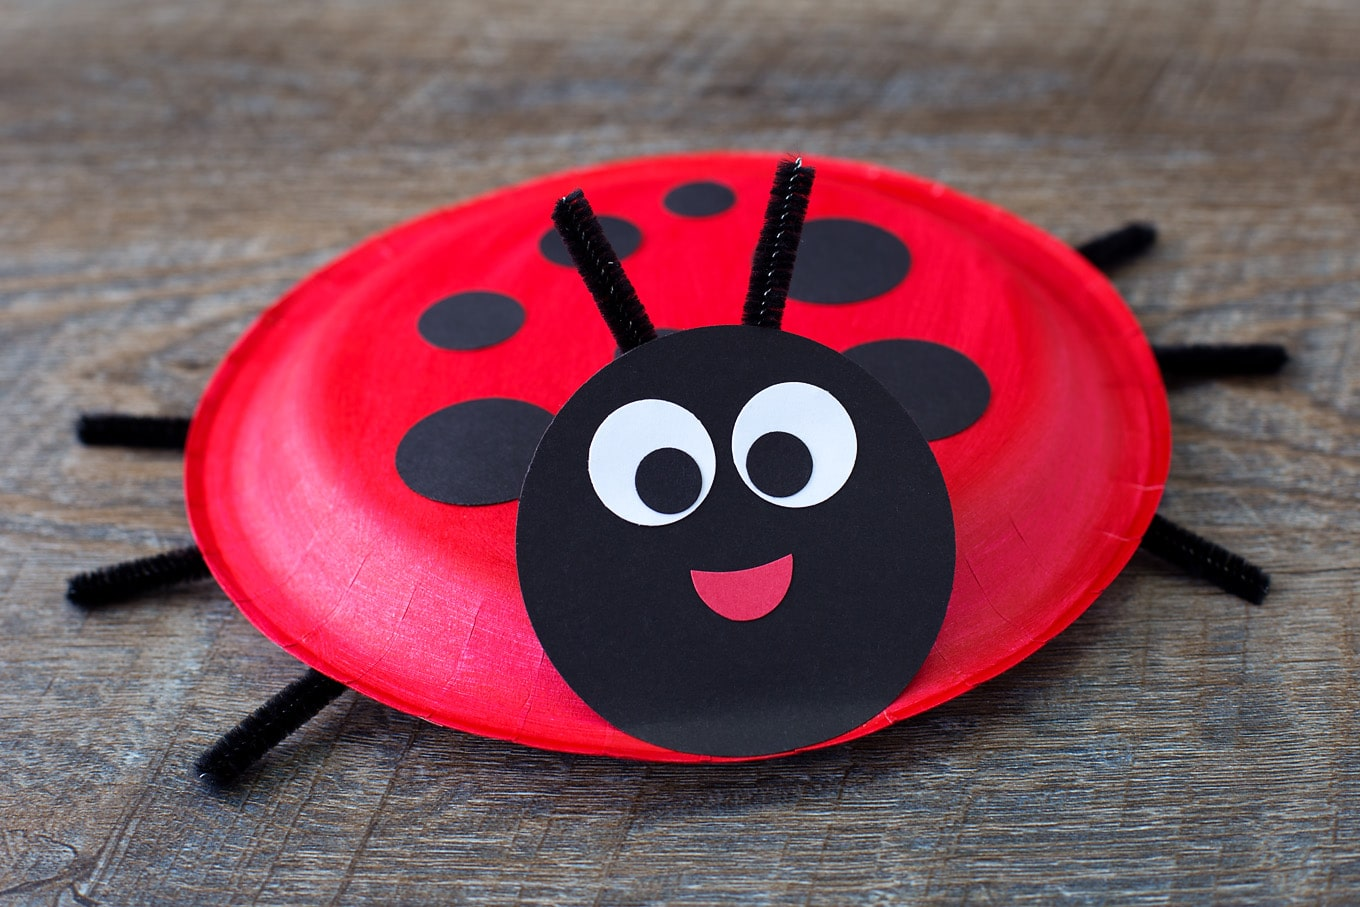 How to Make a Paper Plate Ladybug